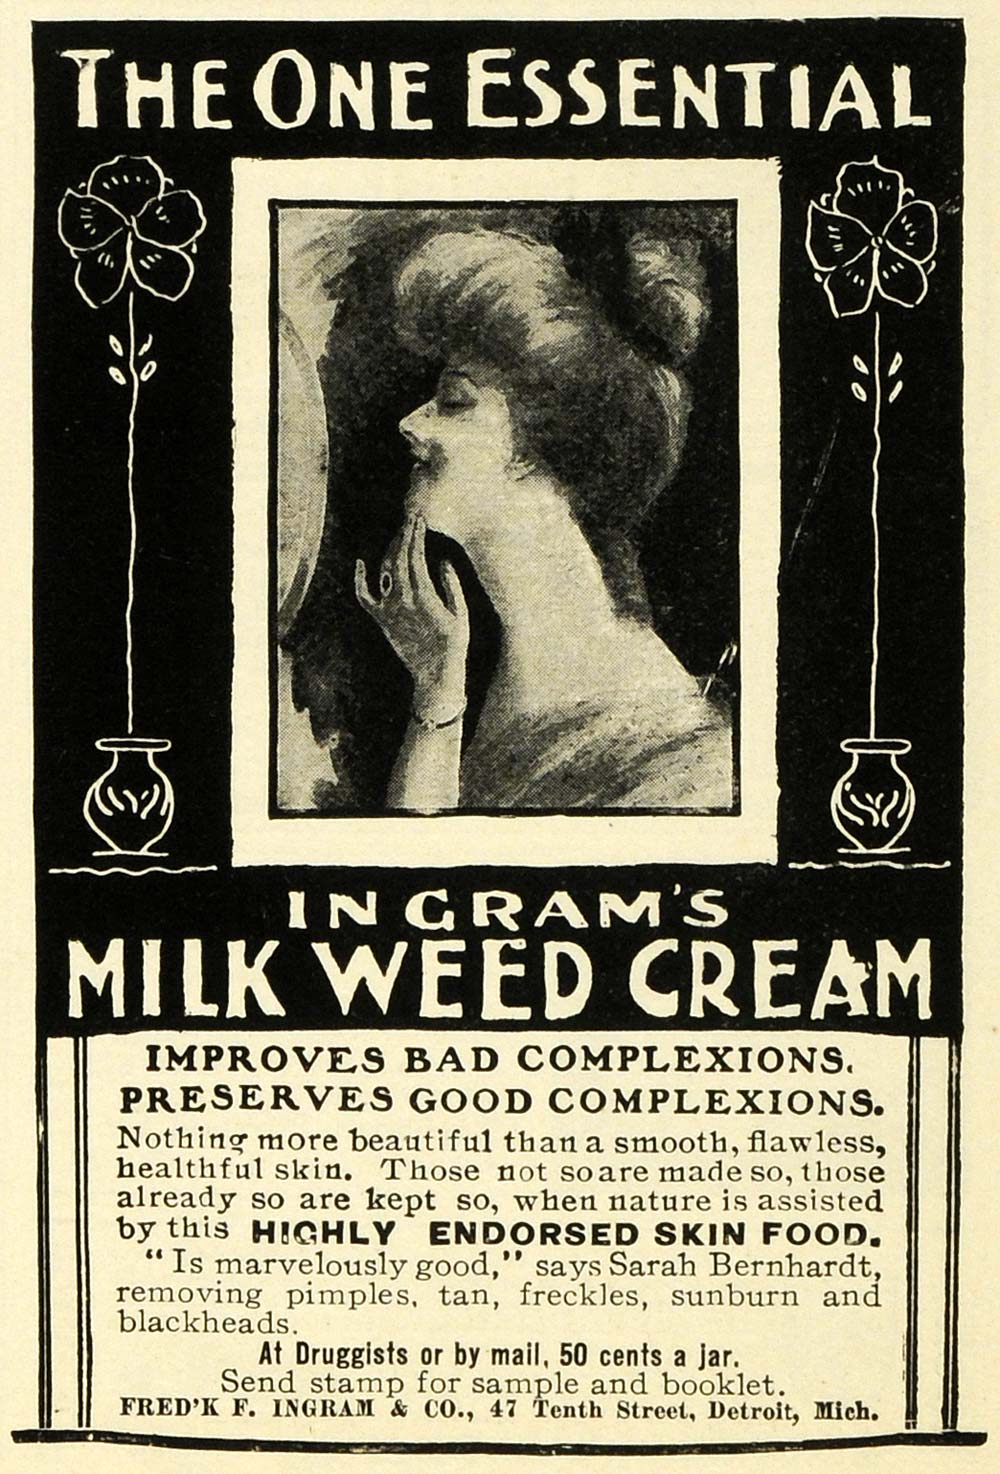 1902 Ad Frederick F Ingram Milkweed Cream Skin Care Beauty Product Essential EM2